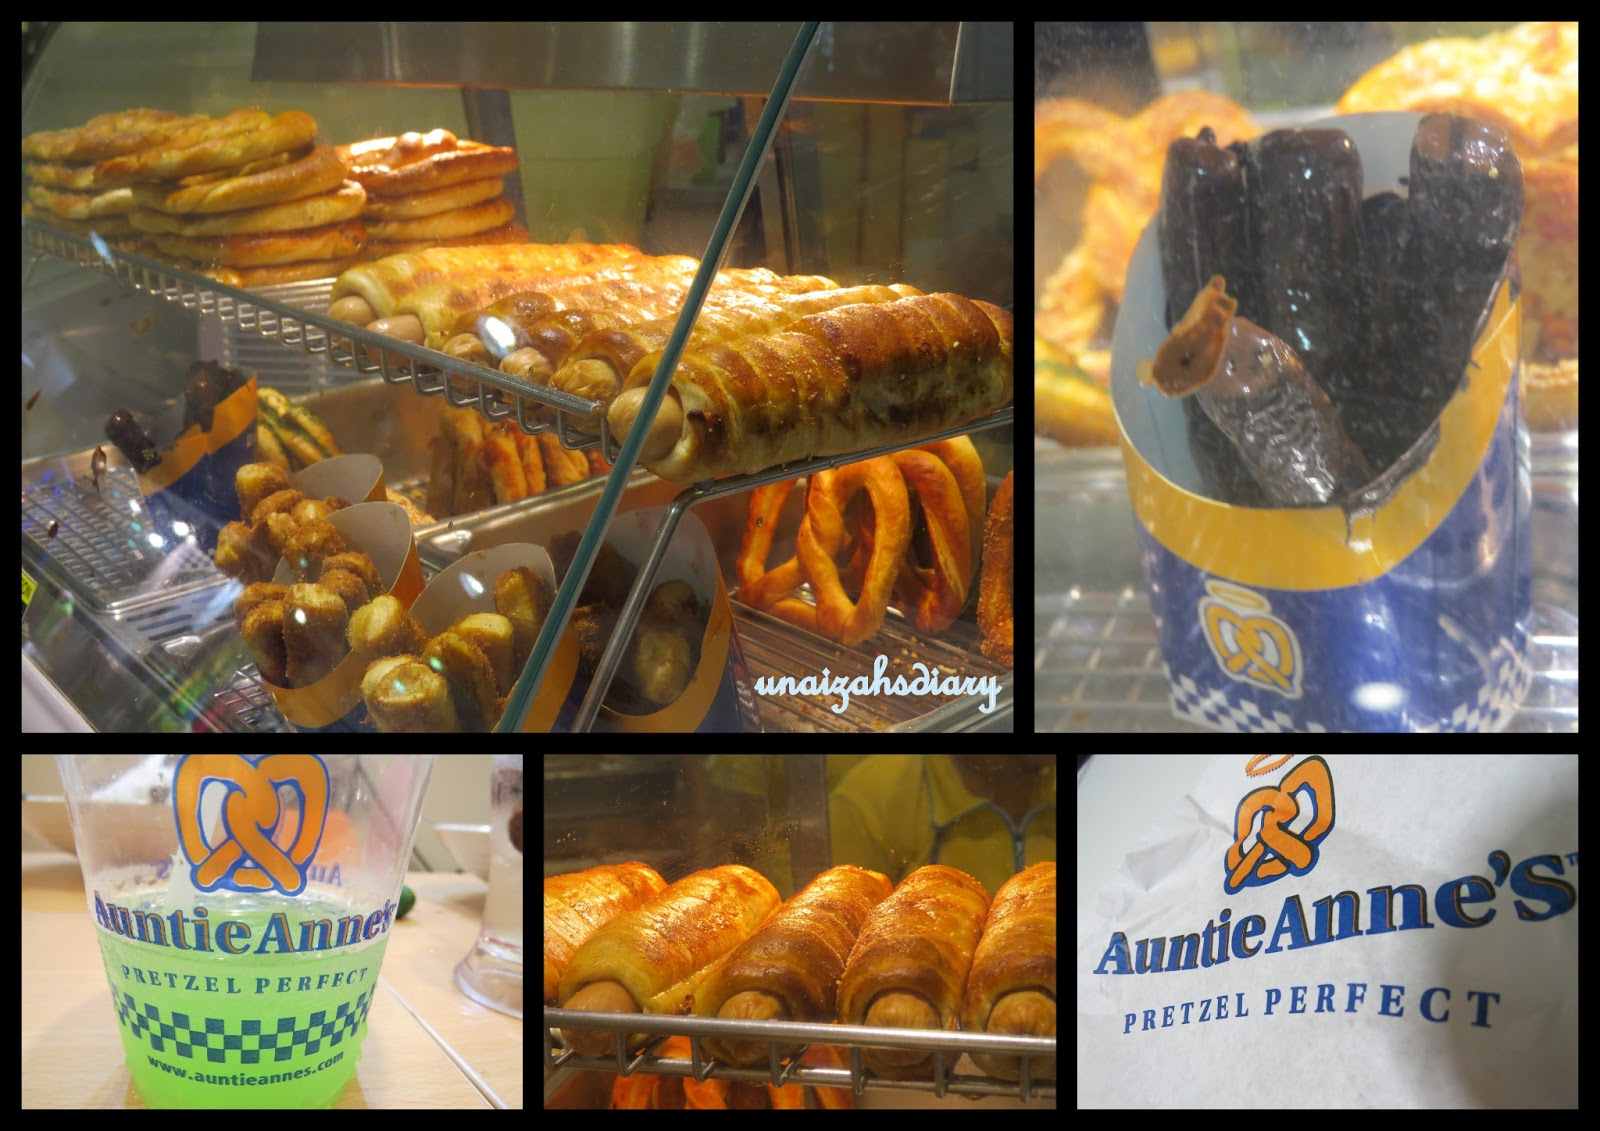 auntie anne Auntie anne's is a manufacturer of gourmet fundraising products by providing fundraising ideas for schools and non-profits, community groups can raise money for their organization by selling a variety of baking kits and frozen pretzel products wow fundraising is proud to offer auntie anne's products to customers who are seeking a well known.